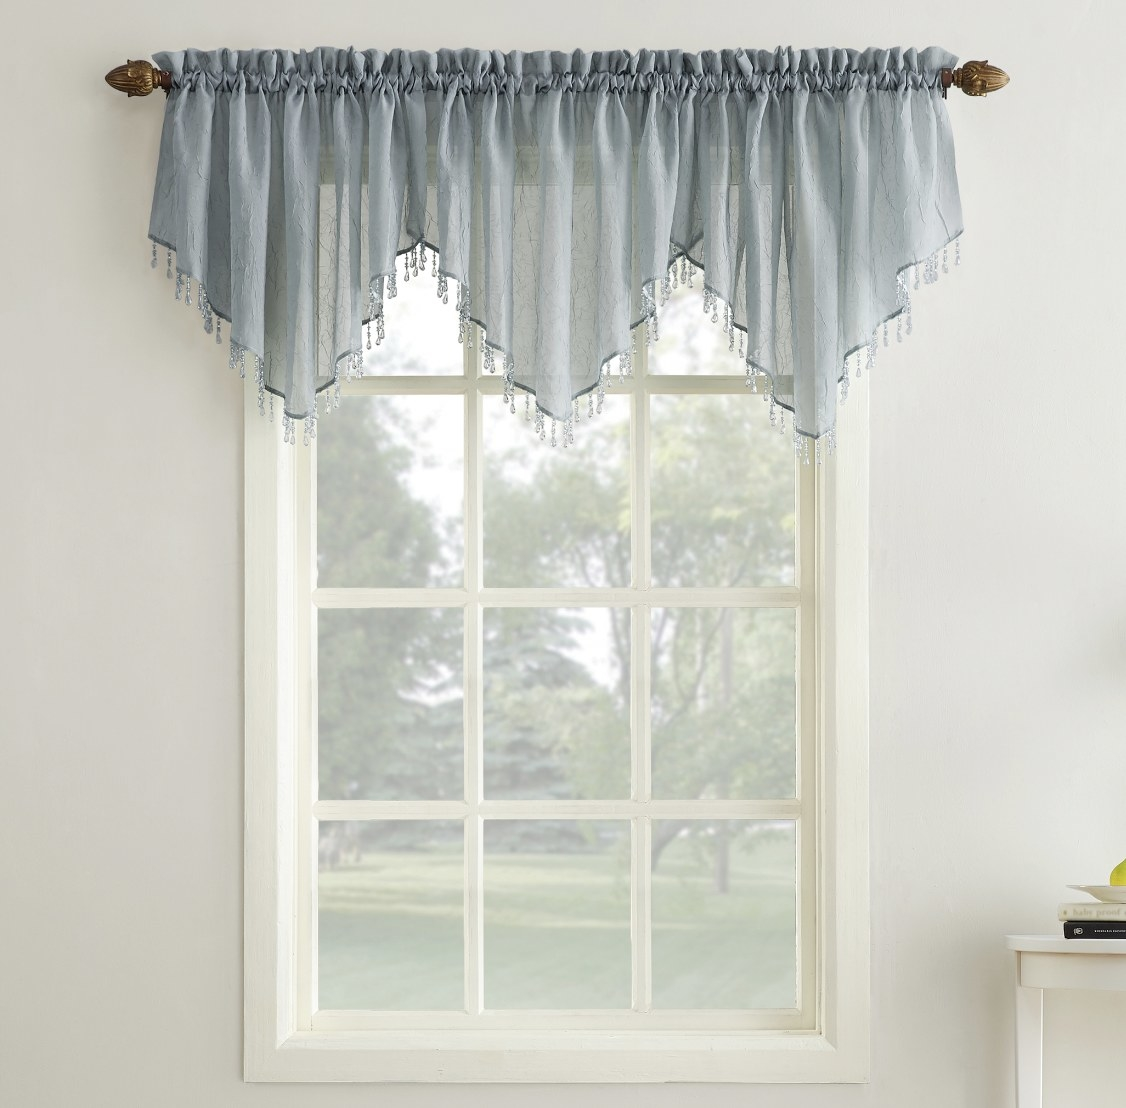 The light blue valance has beadings and three distinct sections